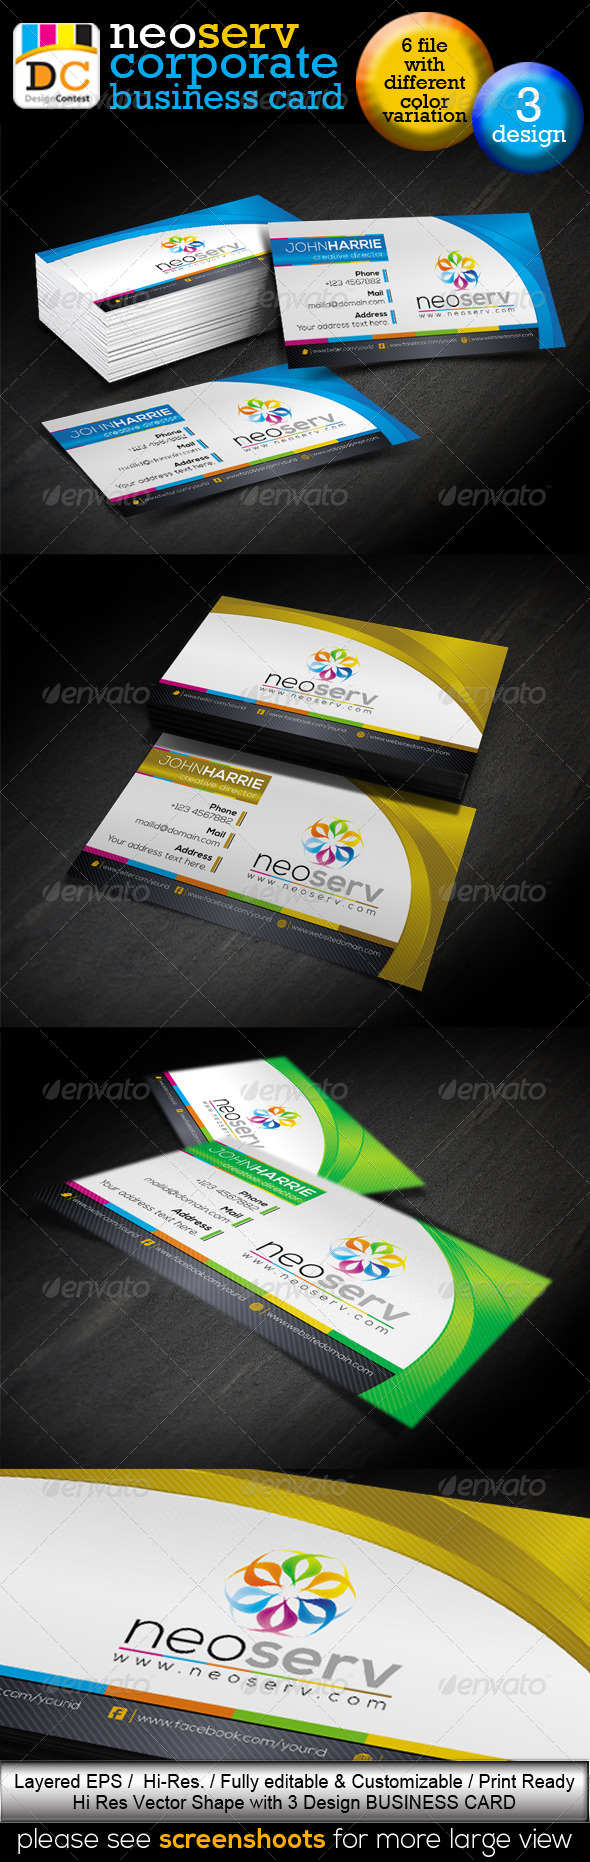 NeoServ_Corporate Creative Business Cards - Corporate Business Cards